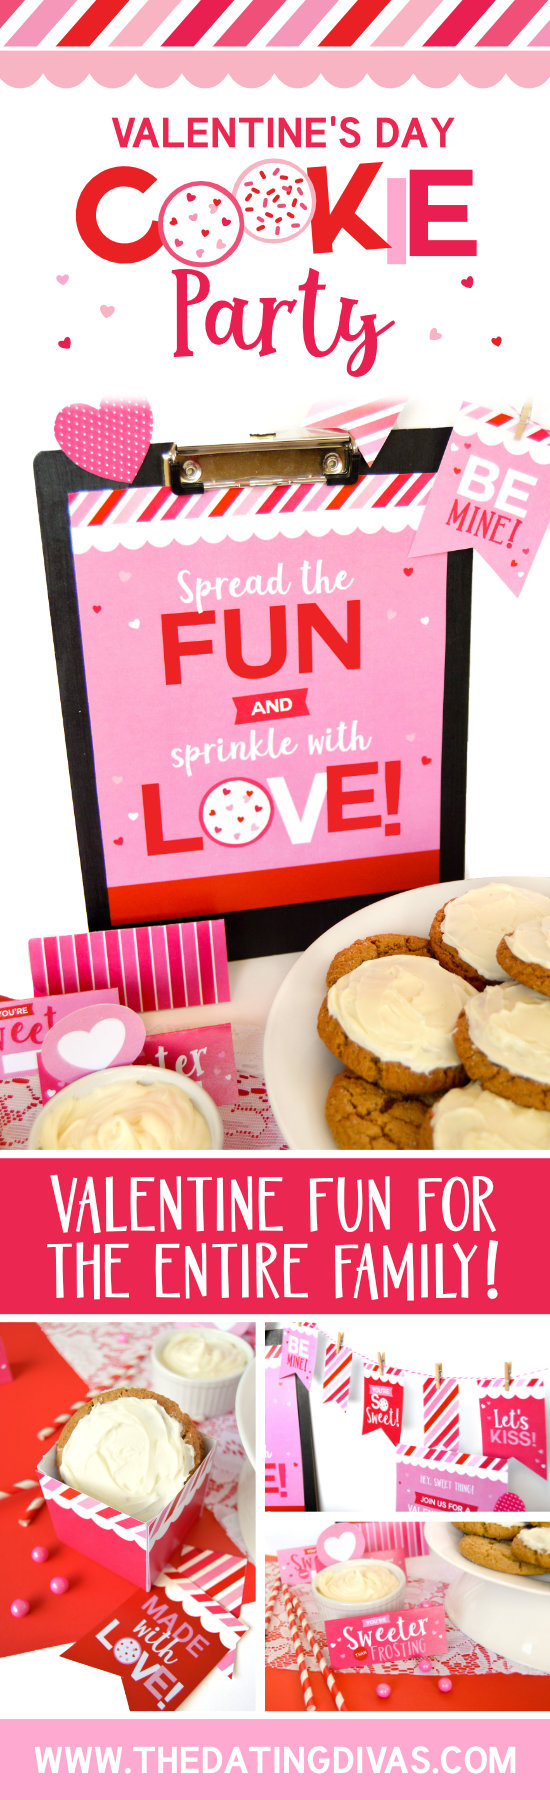 Valentine's Day Cookie Party for Families #valentineparty #valentinestreats